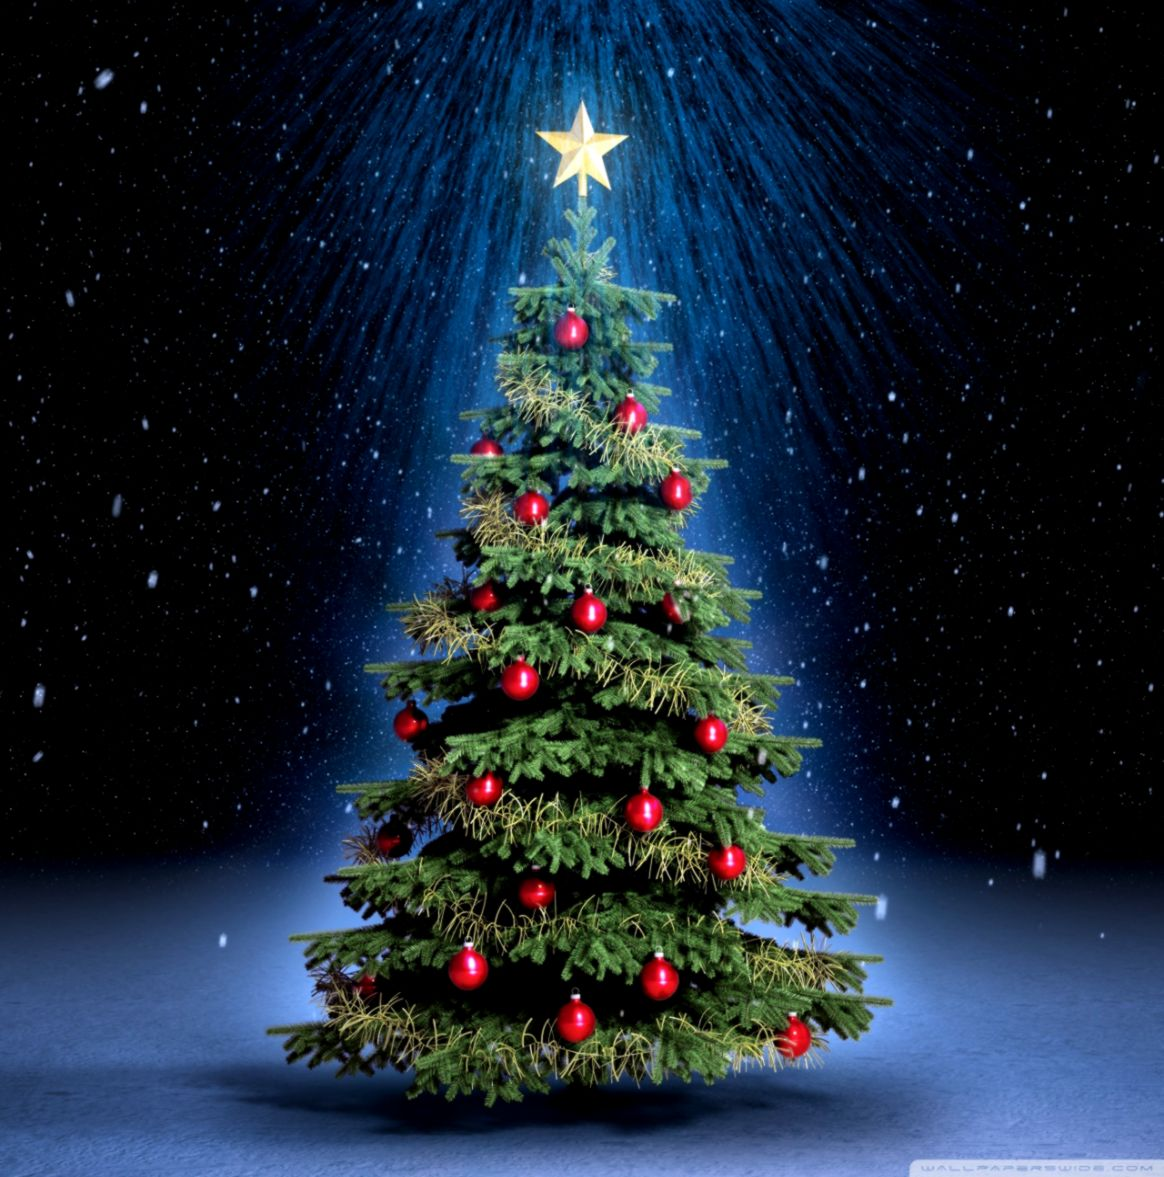 Christmas Wallpaper 4k.Christmas Wallpapers For Android Wallpapers Craft